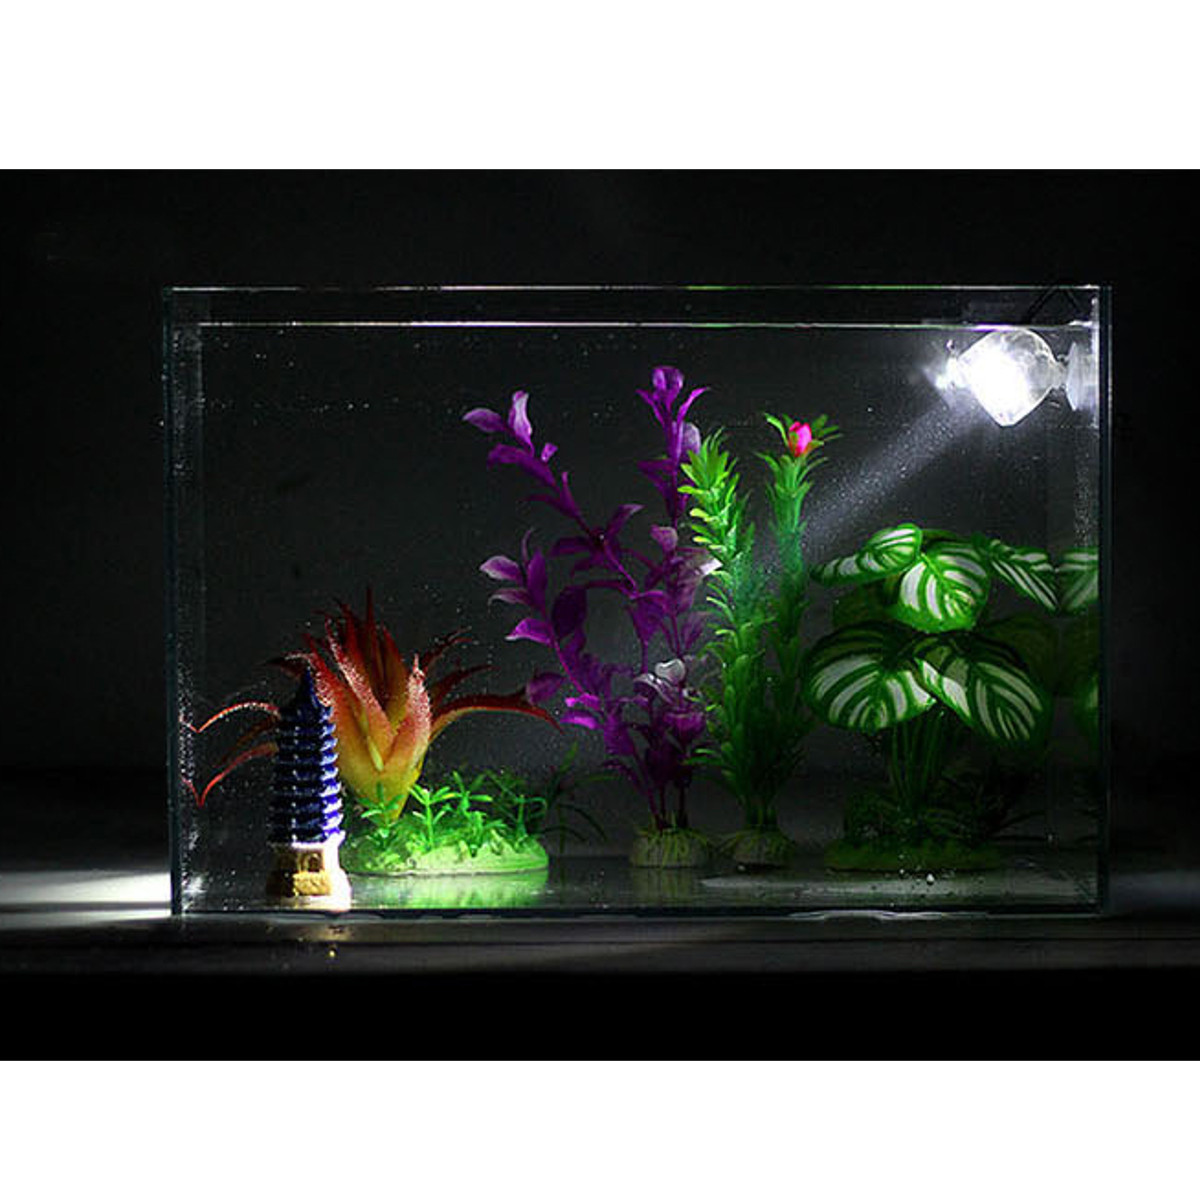 Aquarium poisson led lampe submersible tanche ampoule for Aquarium 1 poisson